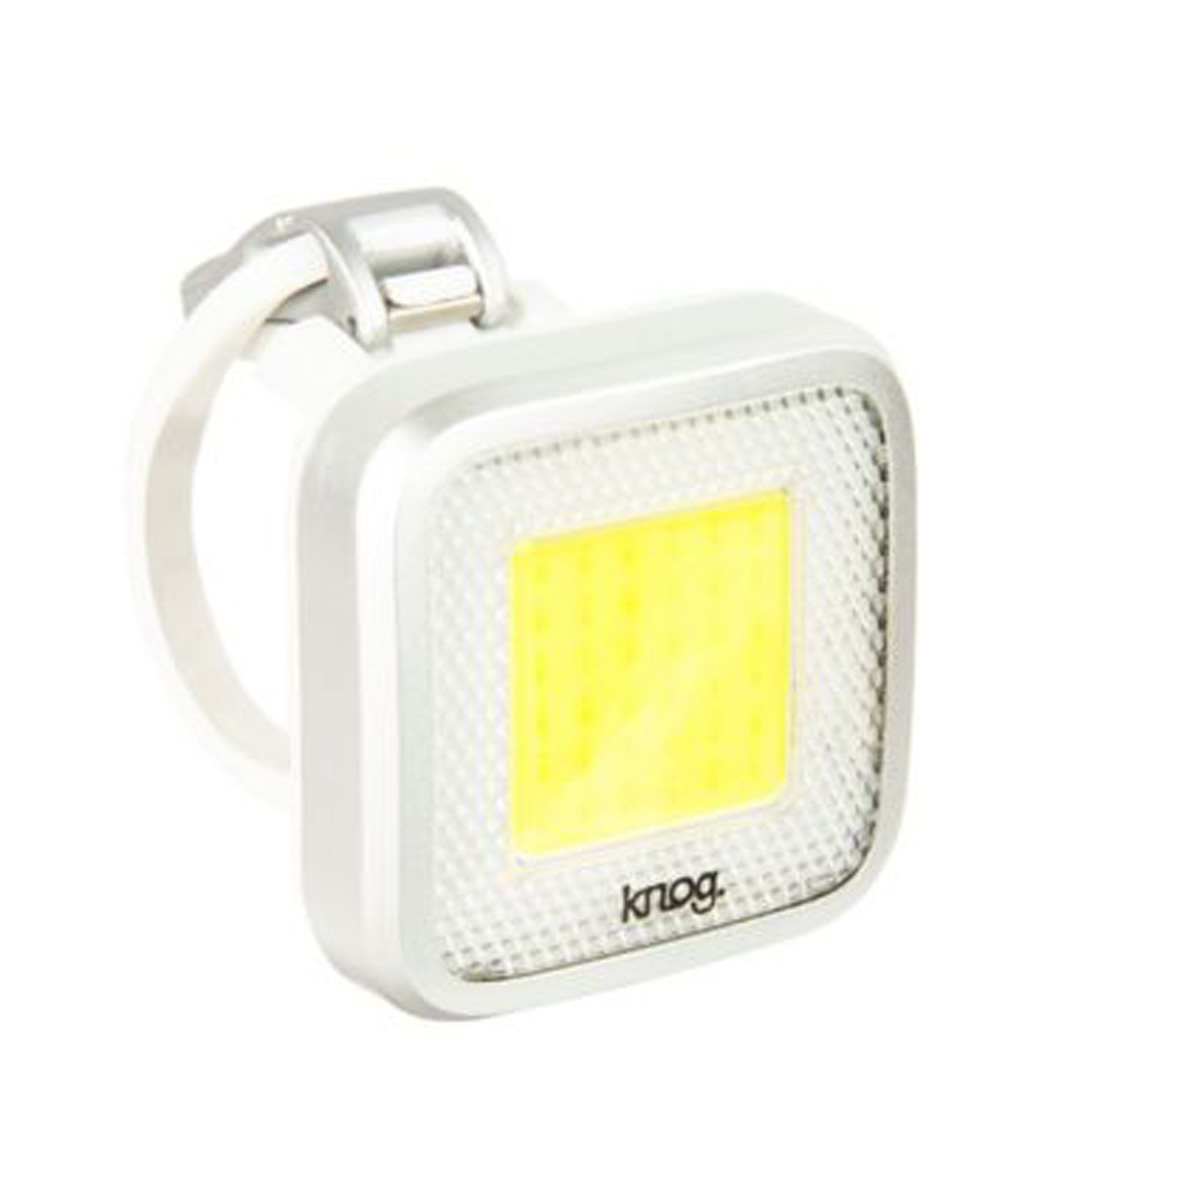 KNOG Blinder Mob Kid Mr Chips Bicycle Head Light - w/Whit...